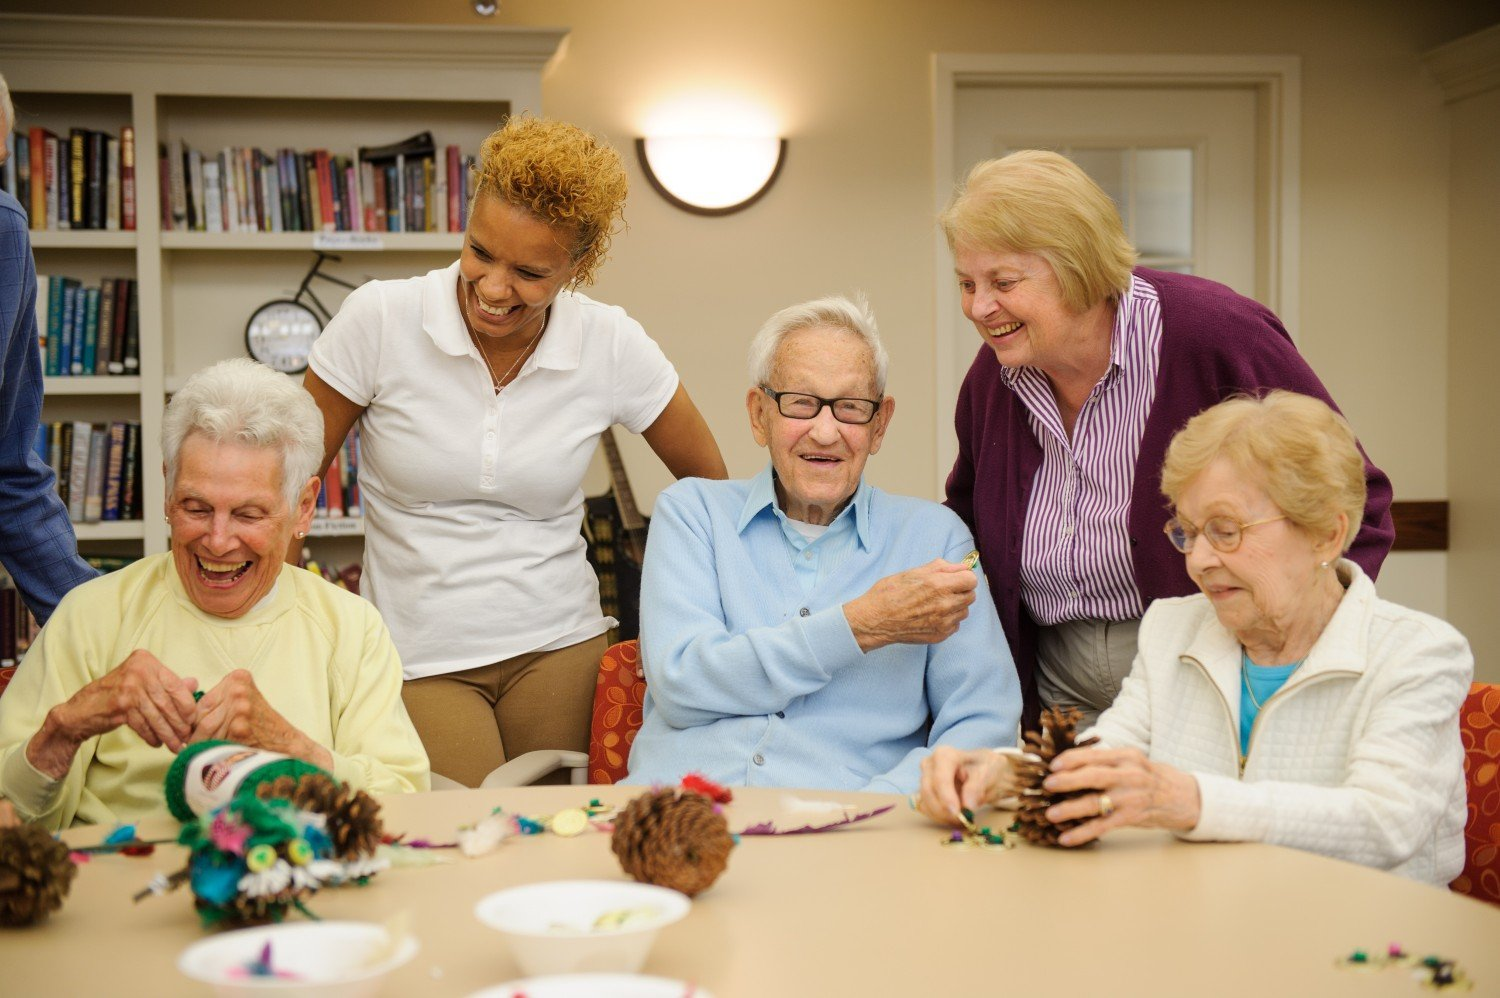 The Importance of Socialization at Senior Living Communities